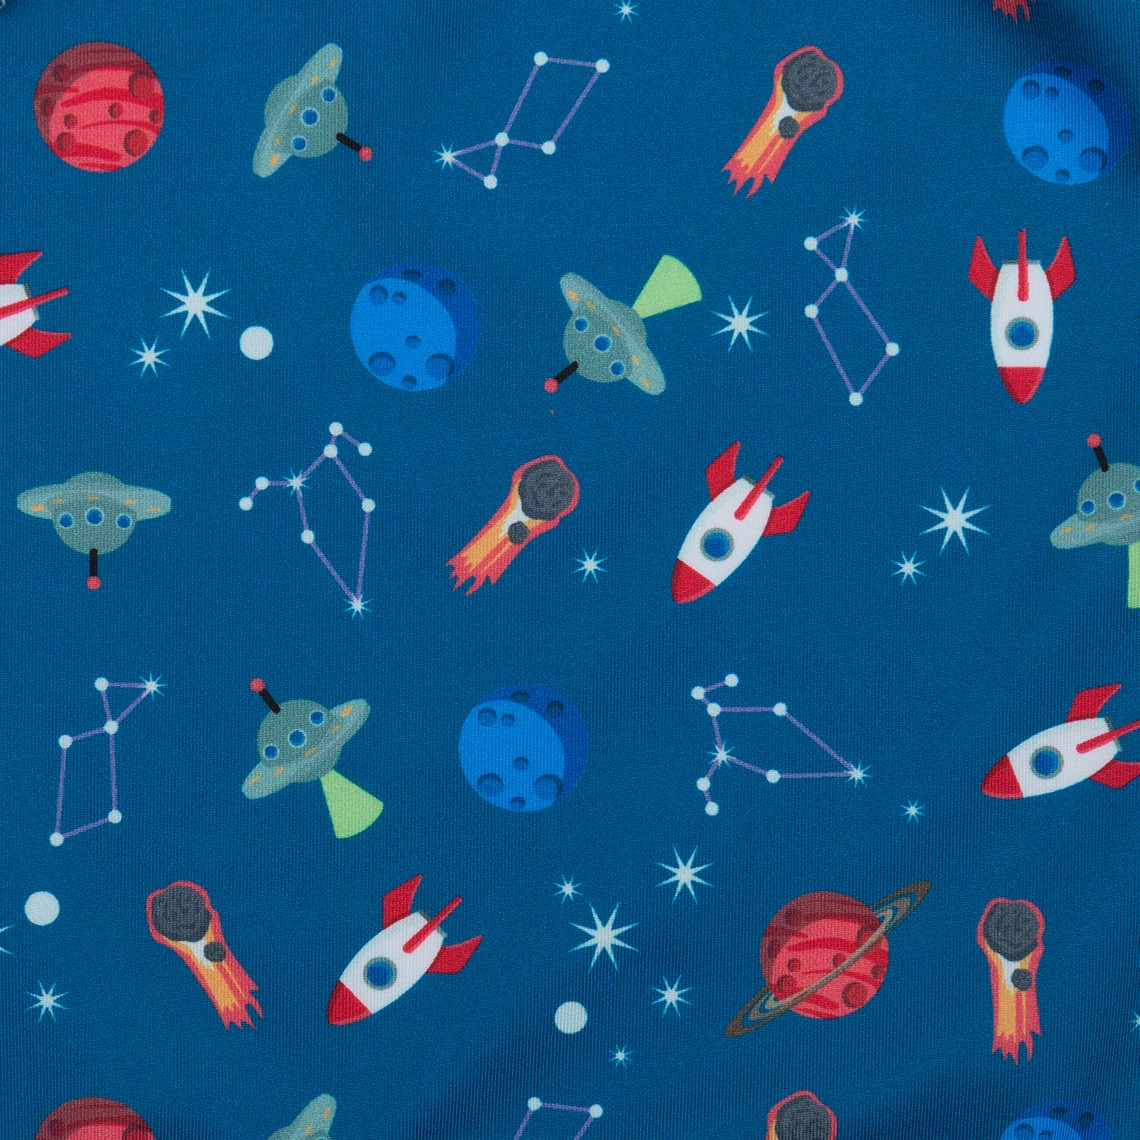 ae40cb6c67 Boy Swimsuit Blue Space Ships 1 year zoom. Siguiente